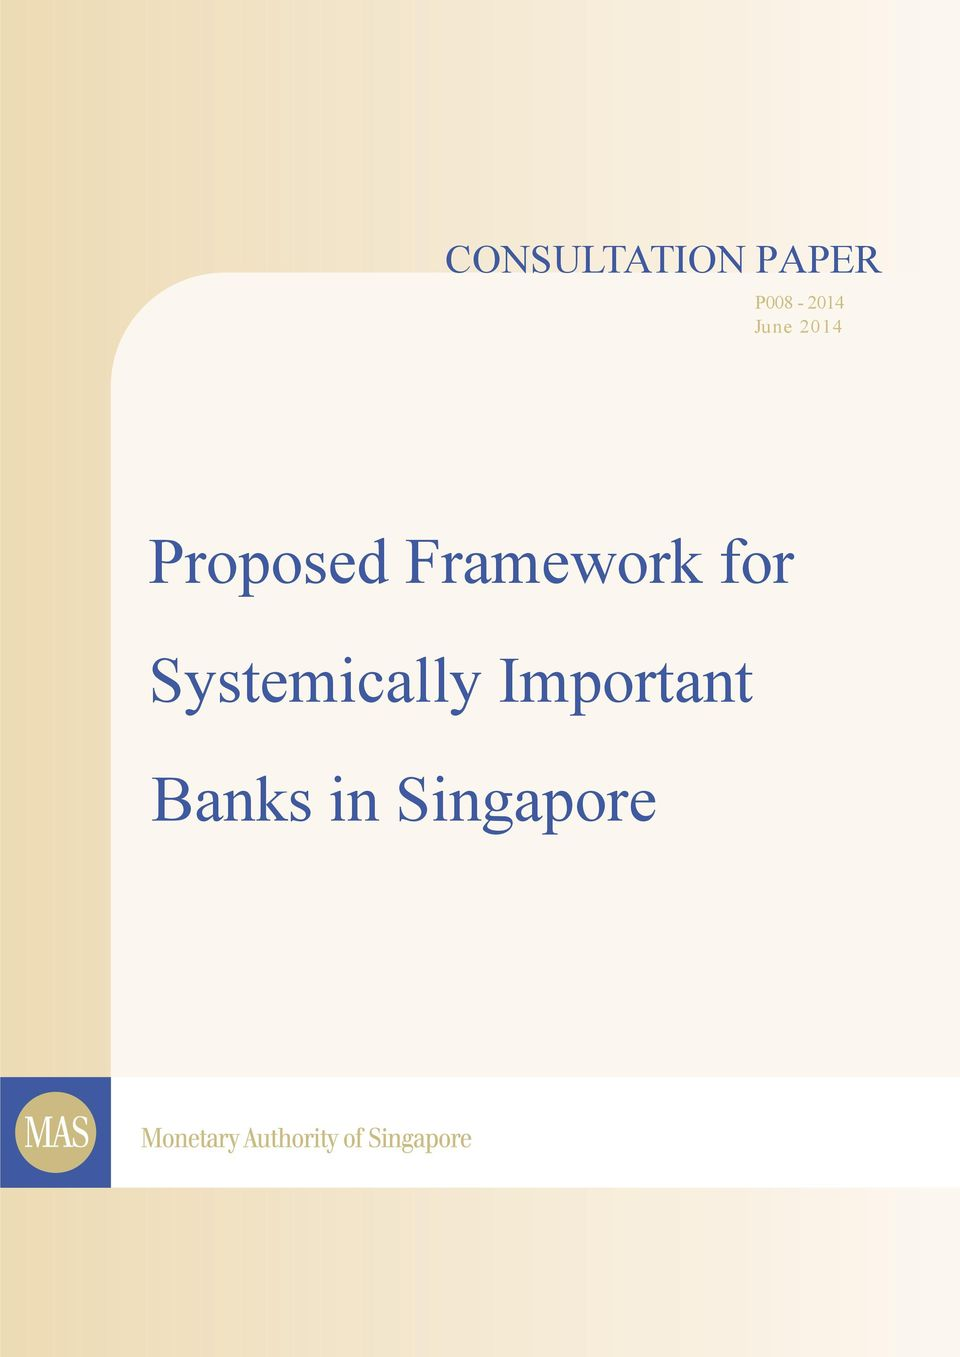 Proposed Framework for